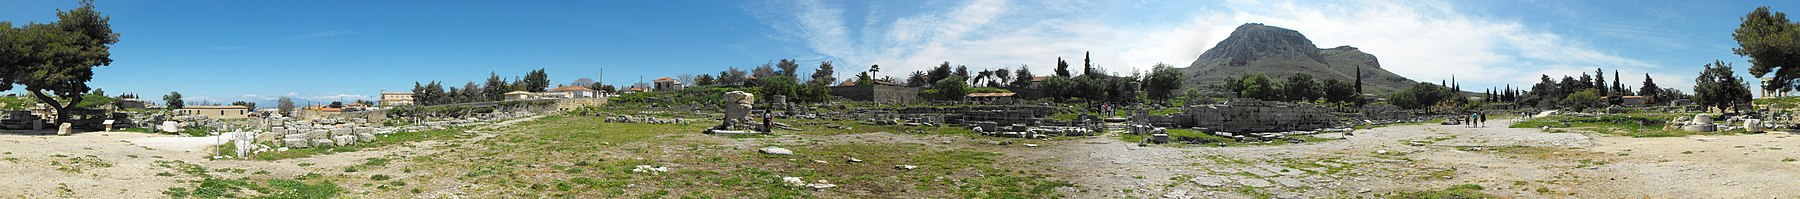 360 Degree Corinth Panorama - panoramio.jpg